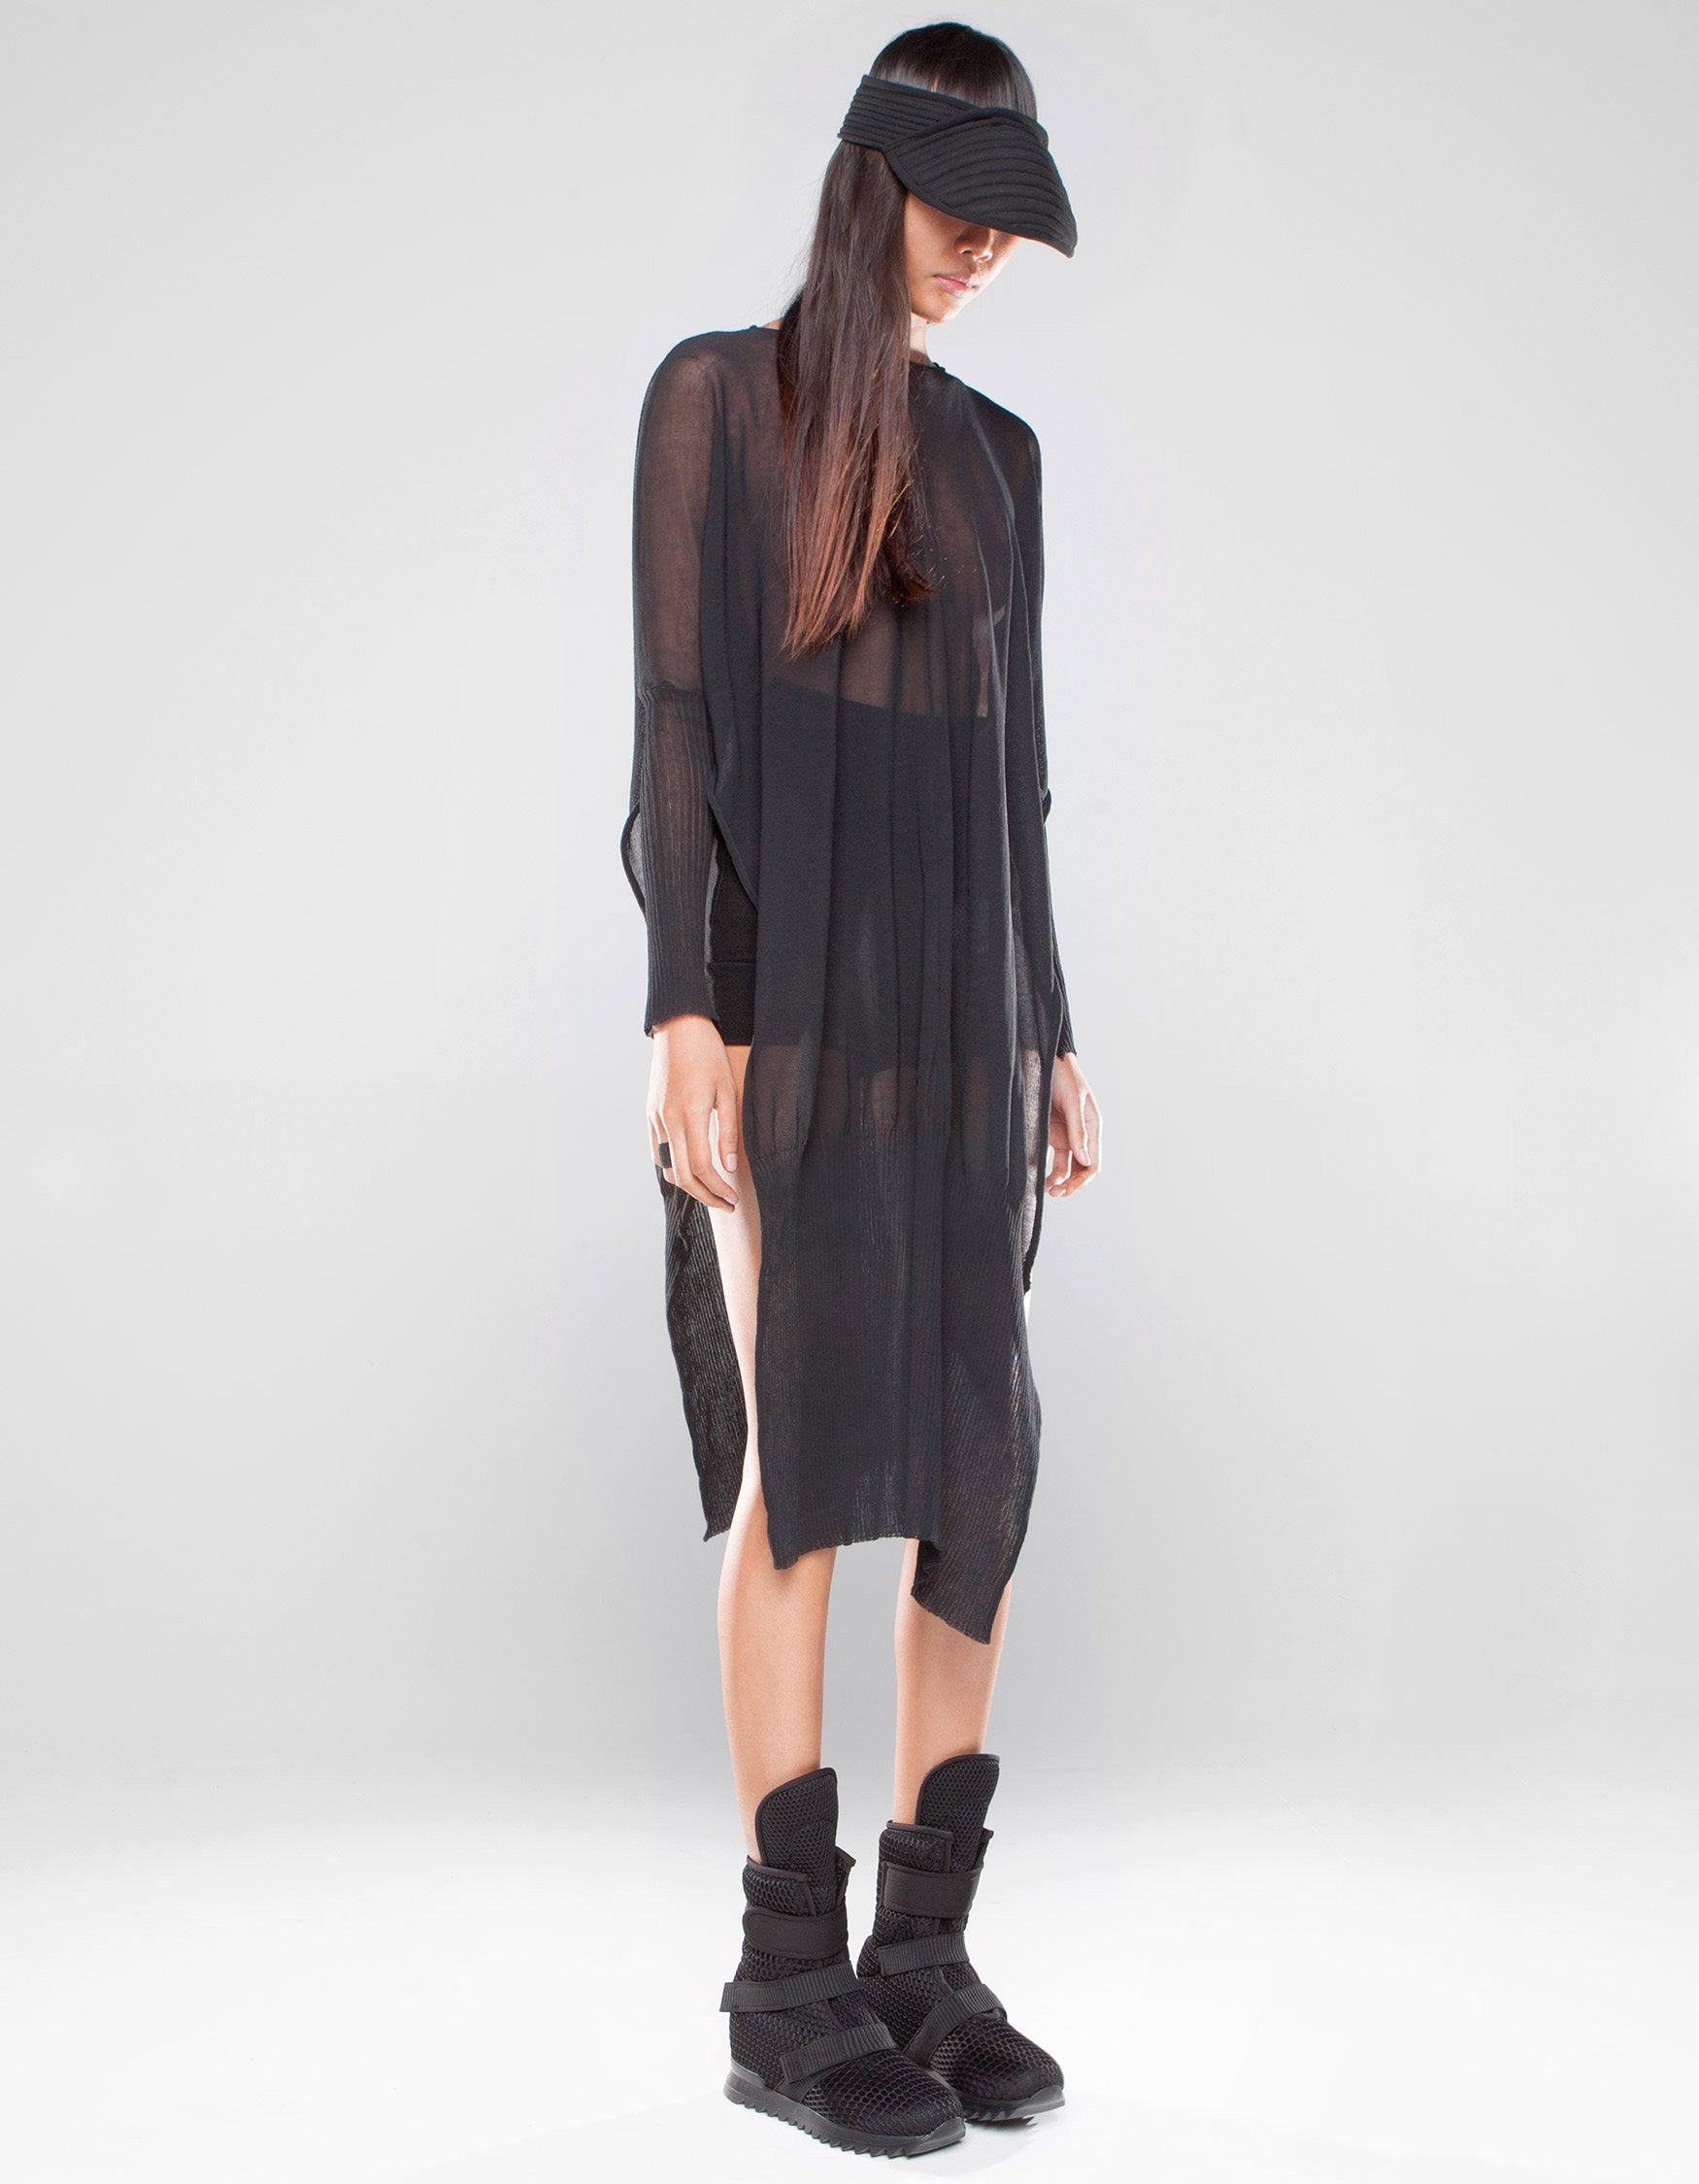 DRESS RIB NEO CHANNEL